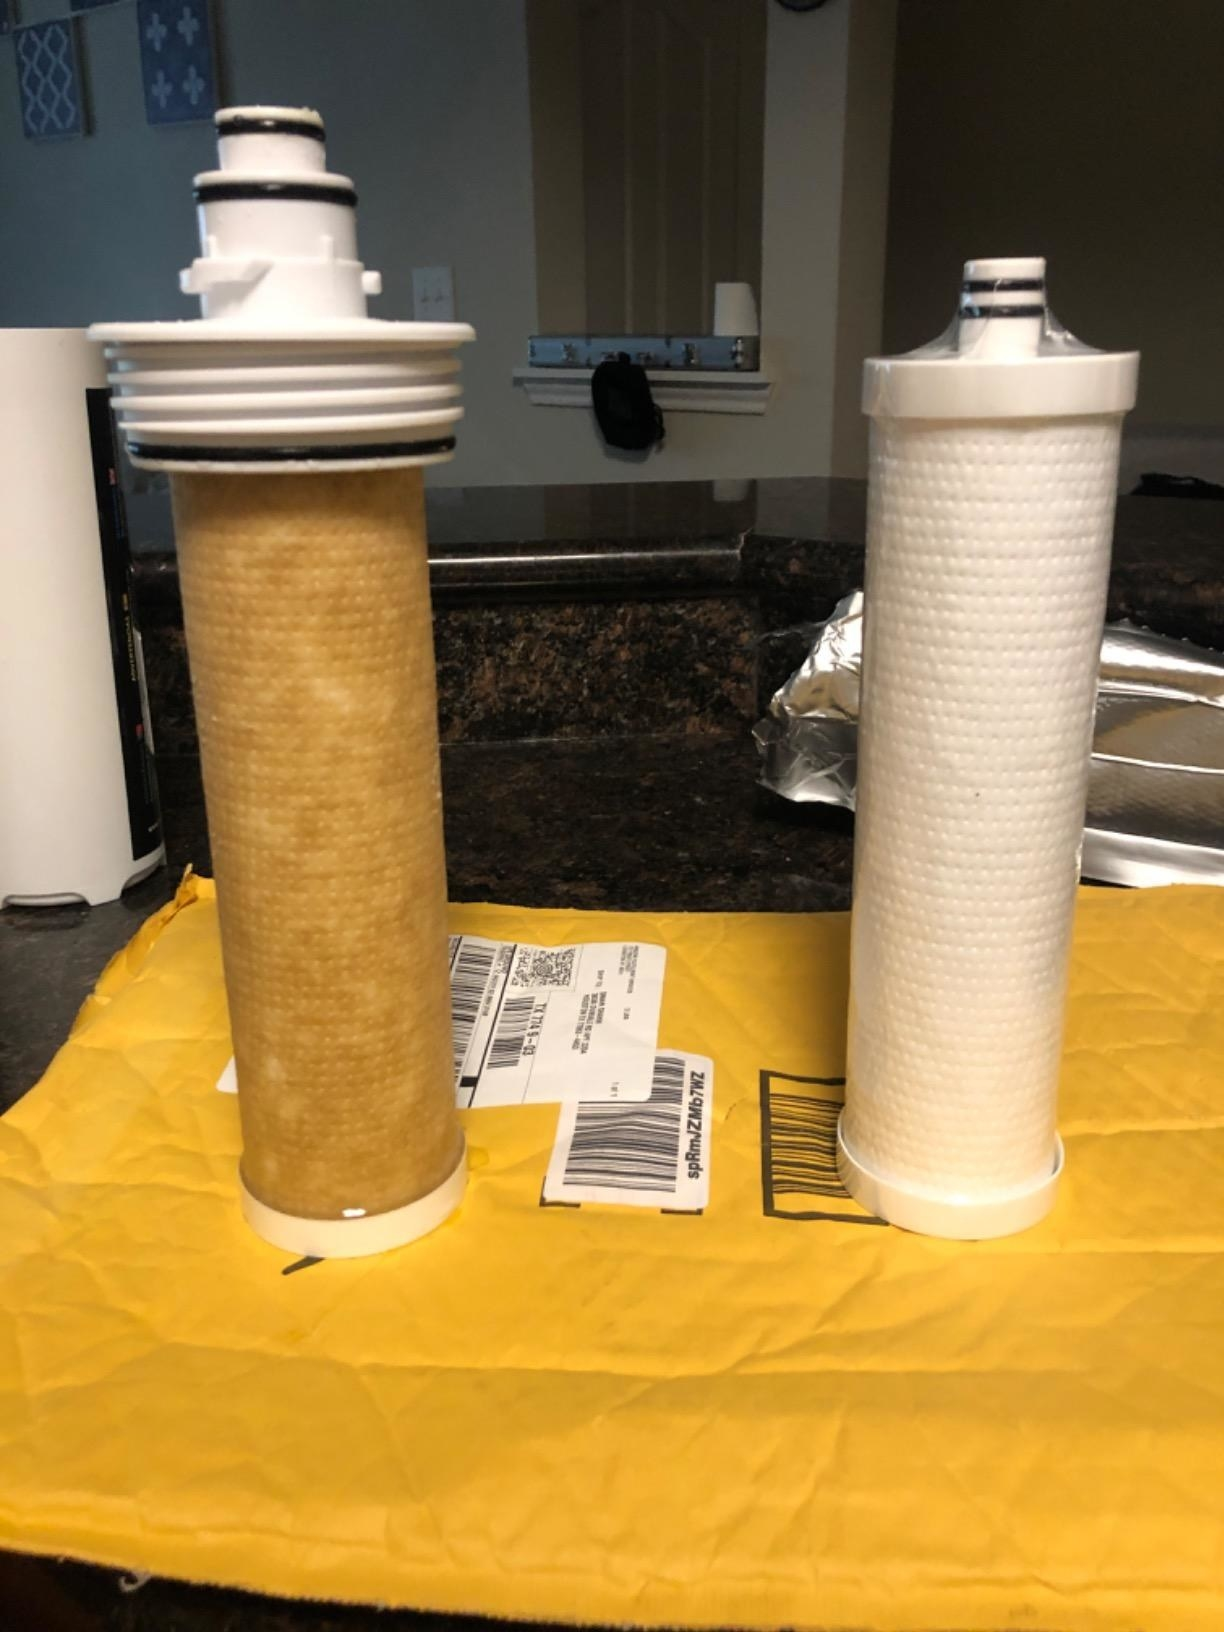 A reviewer photo showing a used filter turned completely brown, and an unused one that's all white